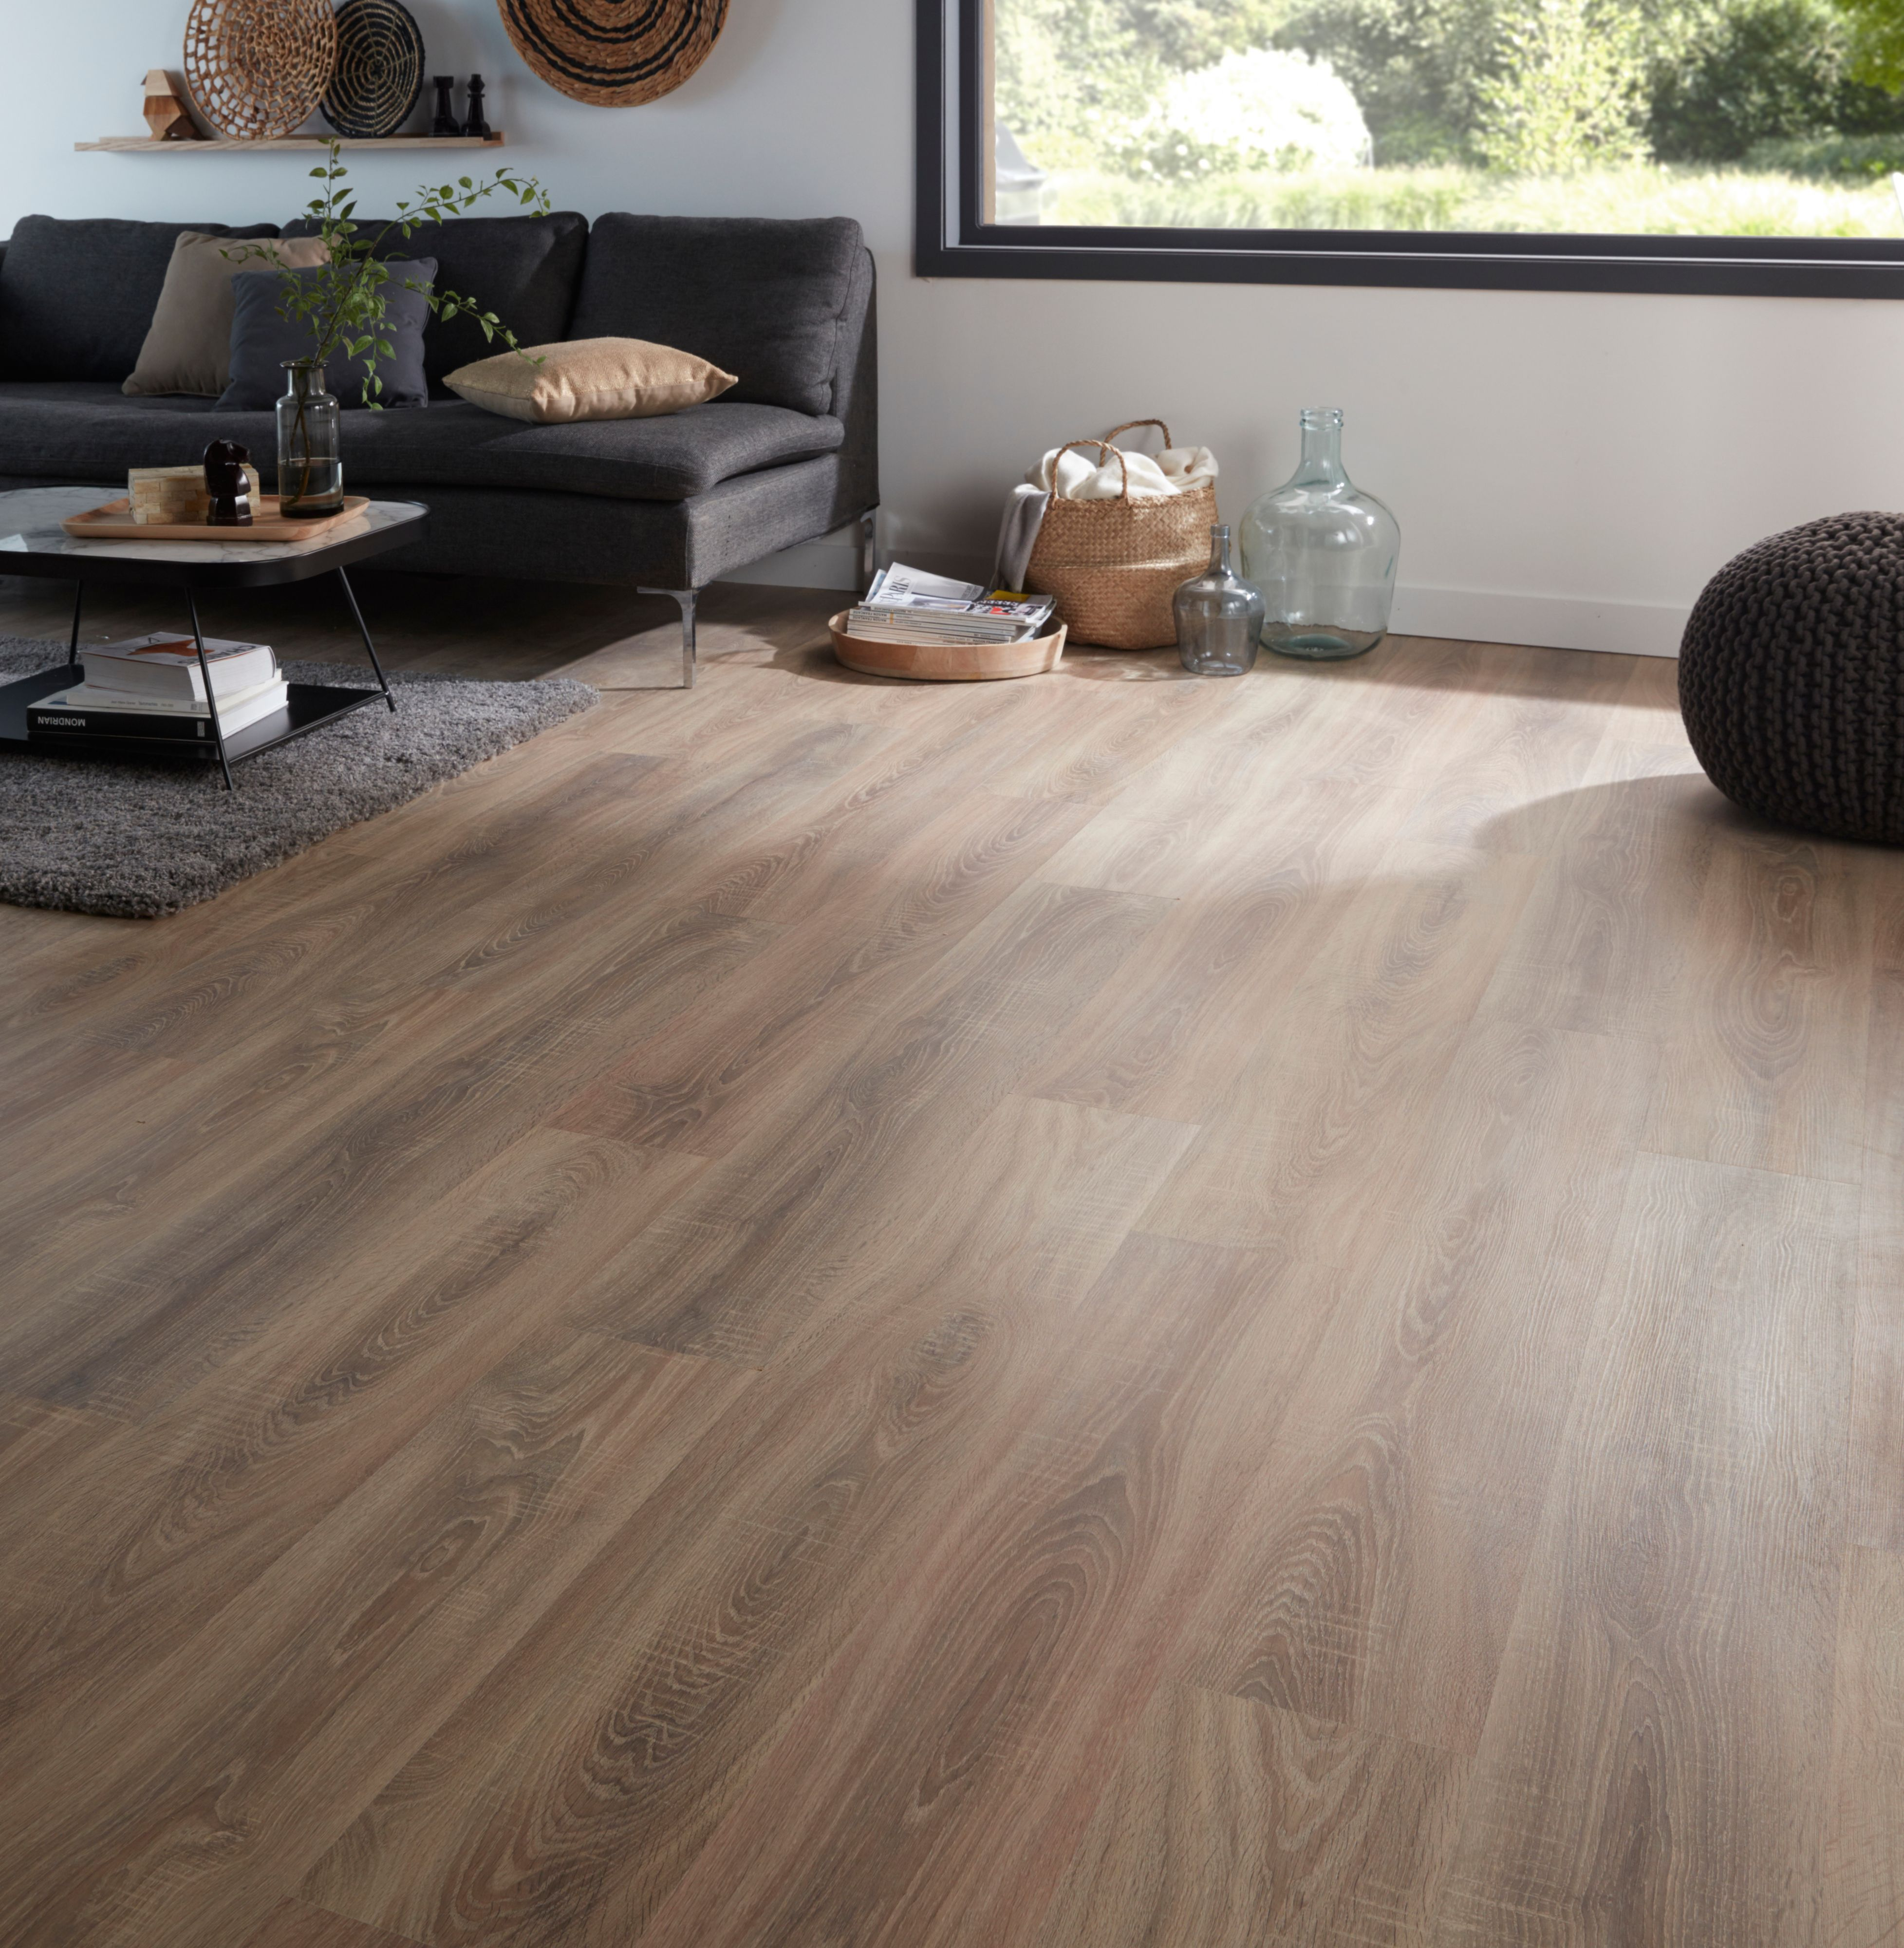 Albury Oak effect Laminate flooring 2.467 m² Pack ...